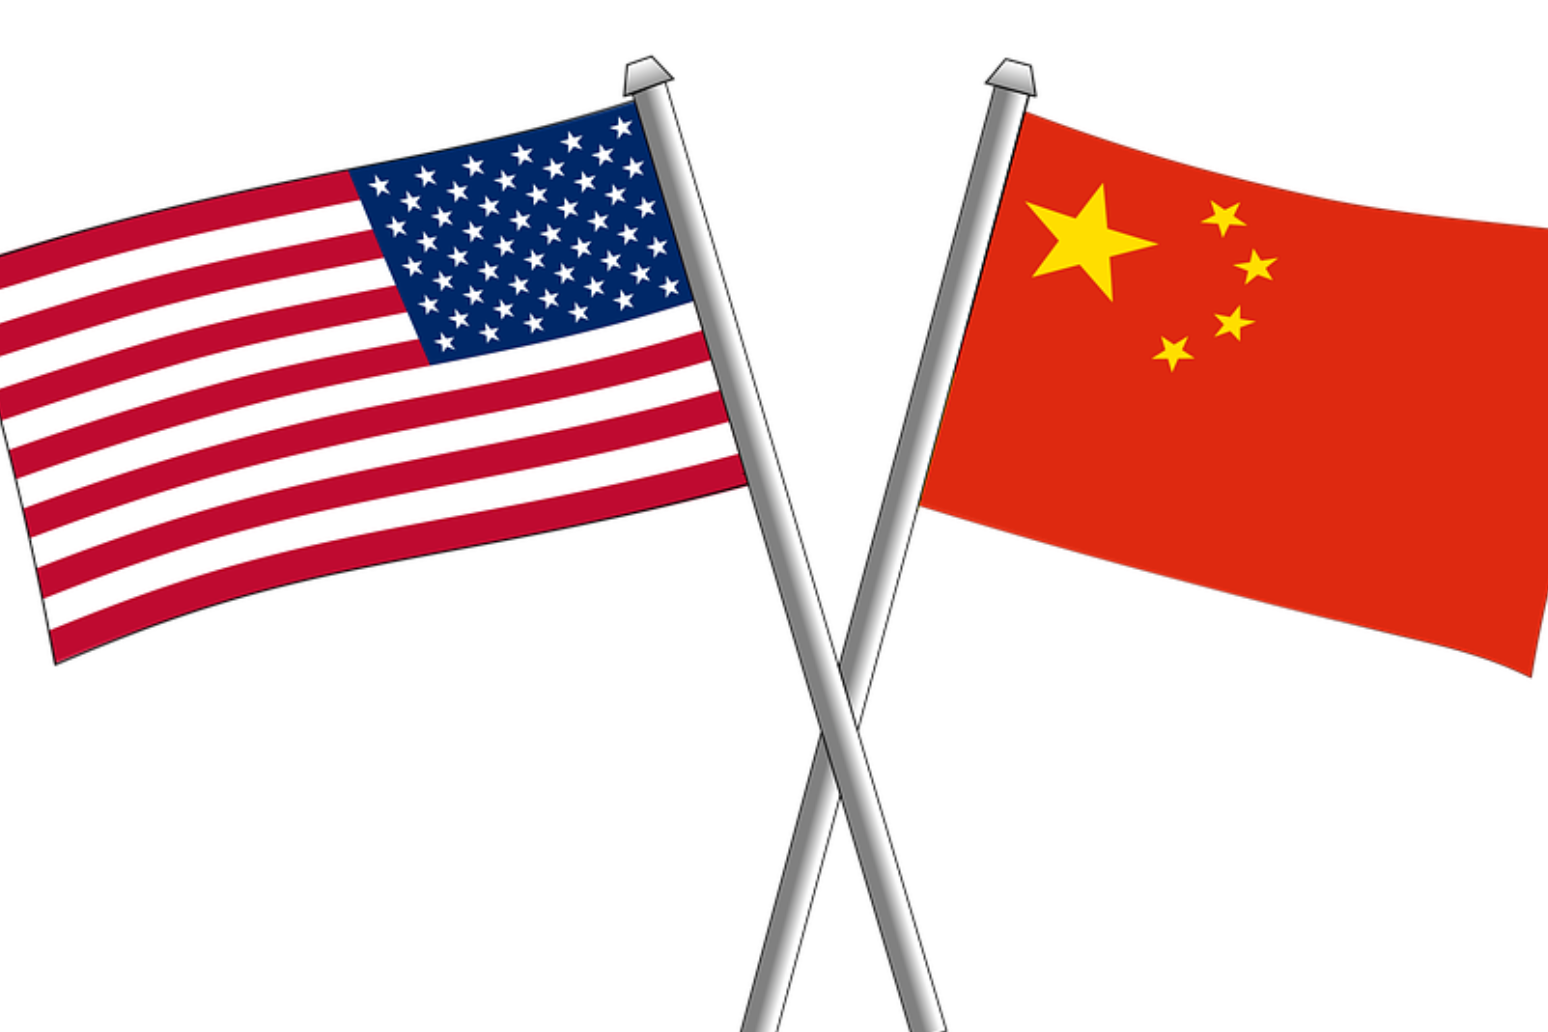 CHINA AND US AGREE TO HALT TARIFF HIKES AS TALKS PROGRESS